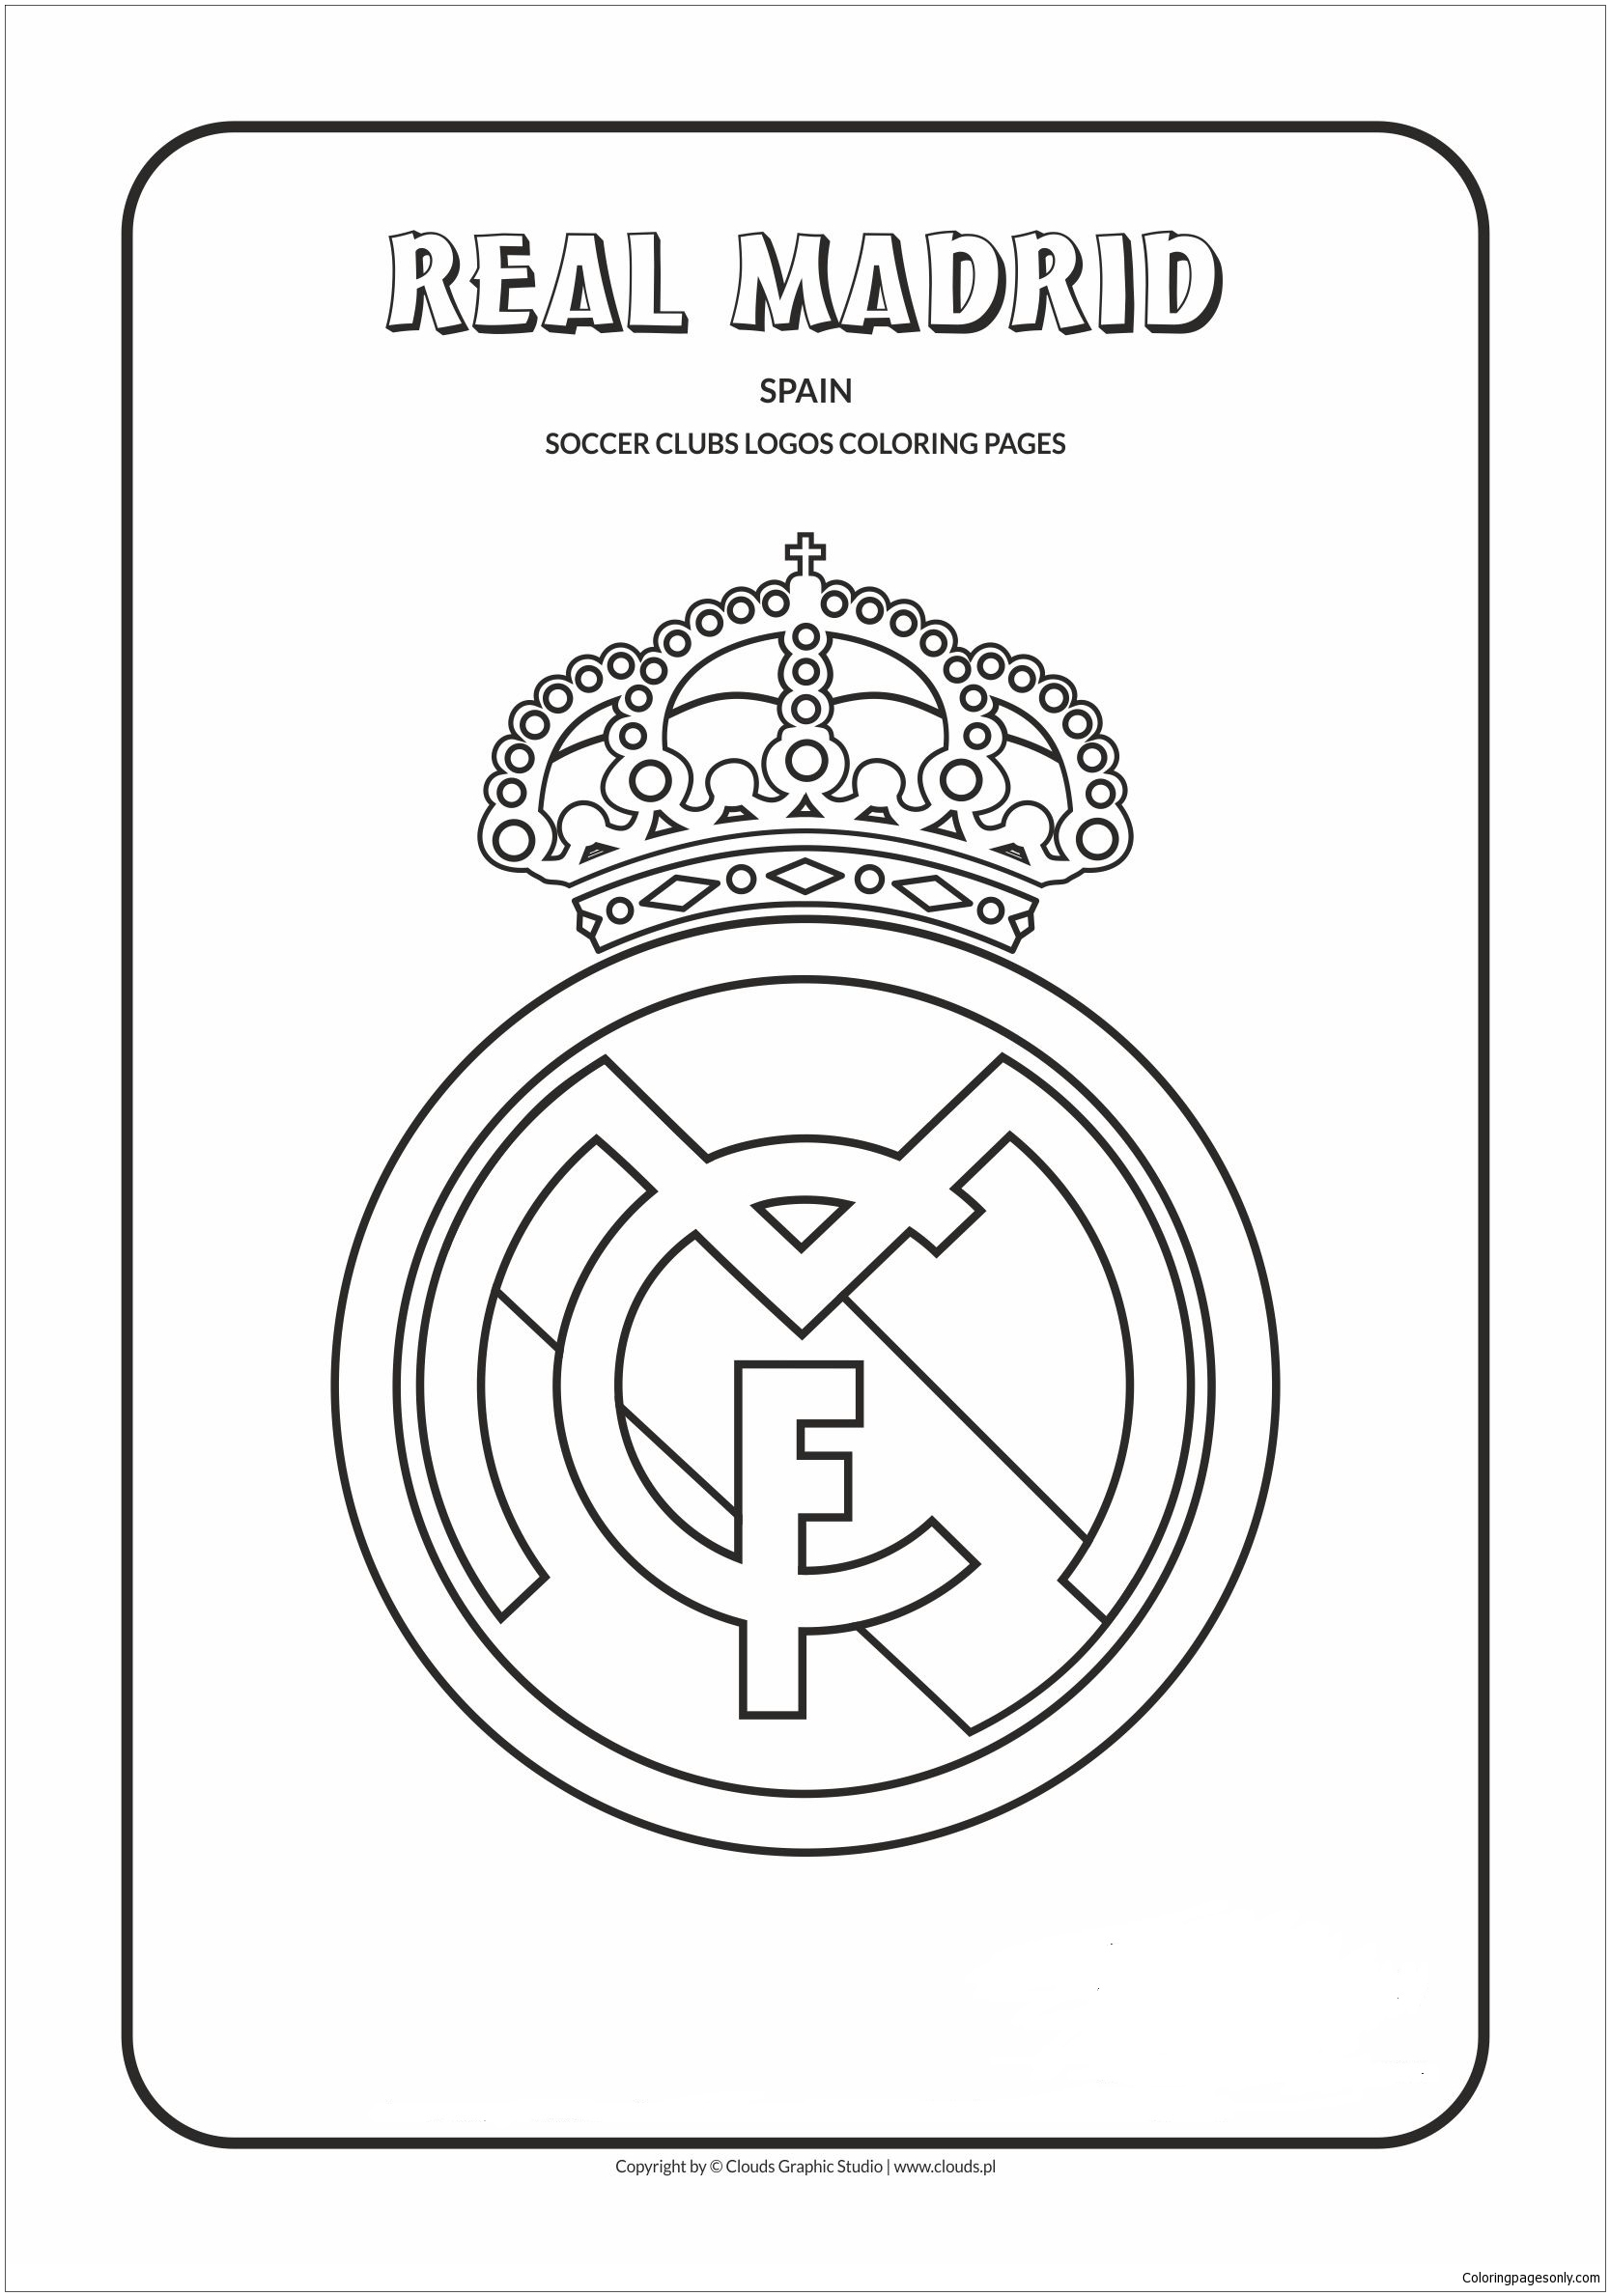 madrid coloring soccer clubs logos for kids and adults barcelona logo madrid00 fabric coloring pages Barcelona Logo Coloring Page